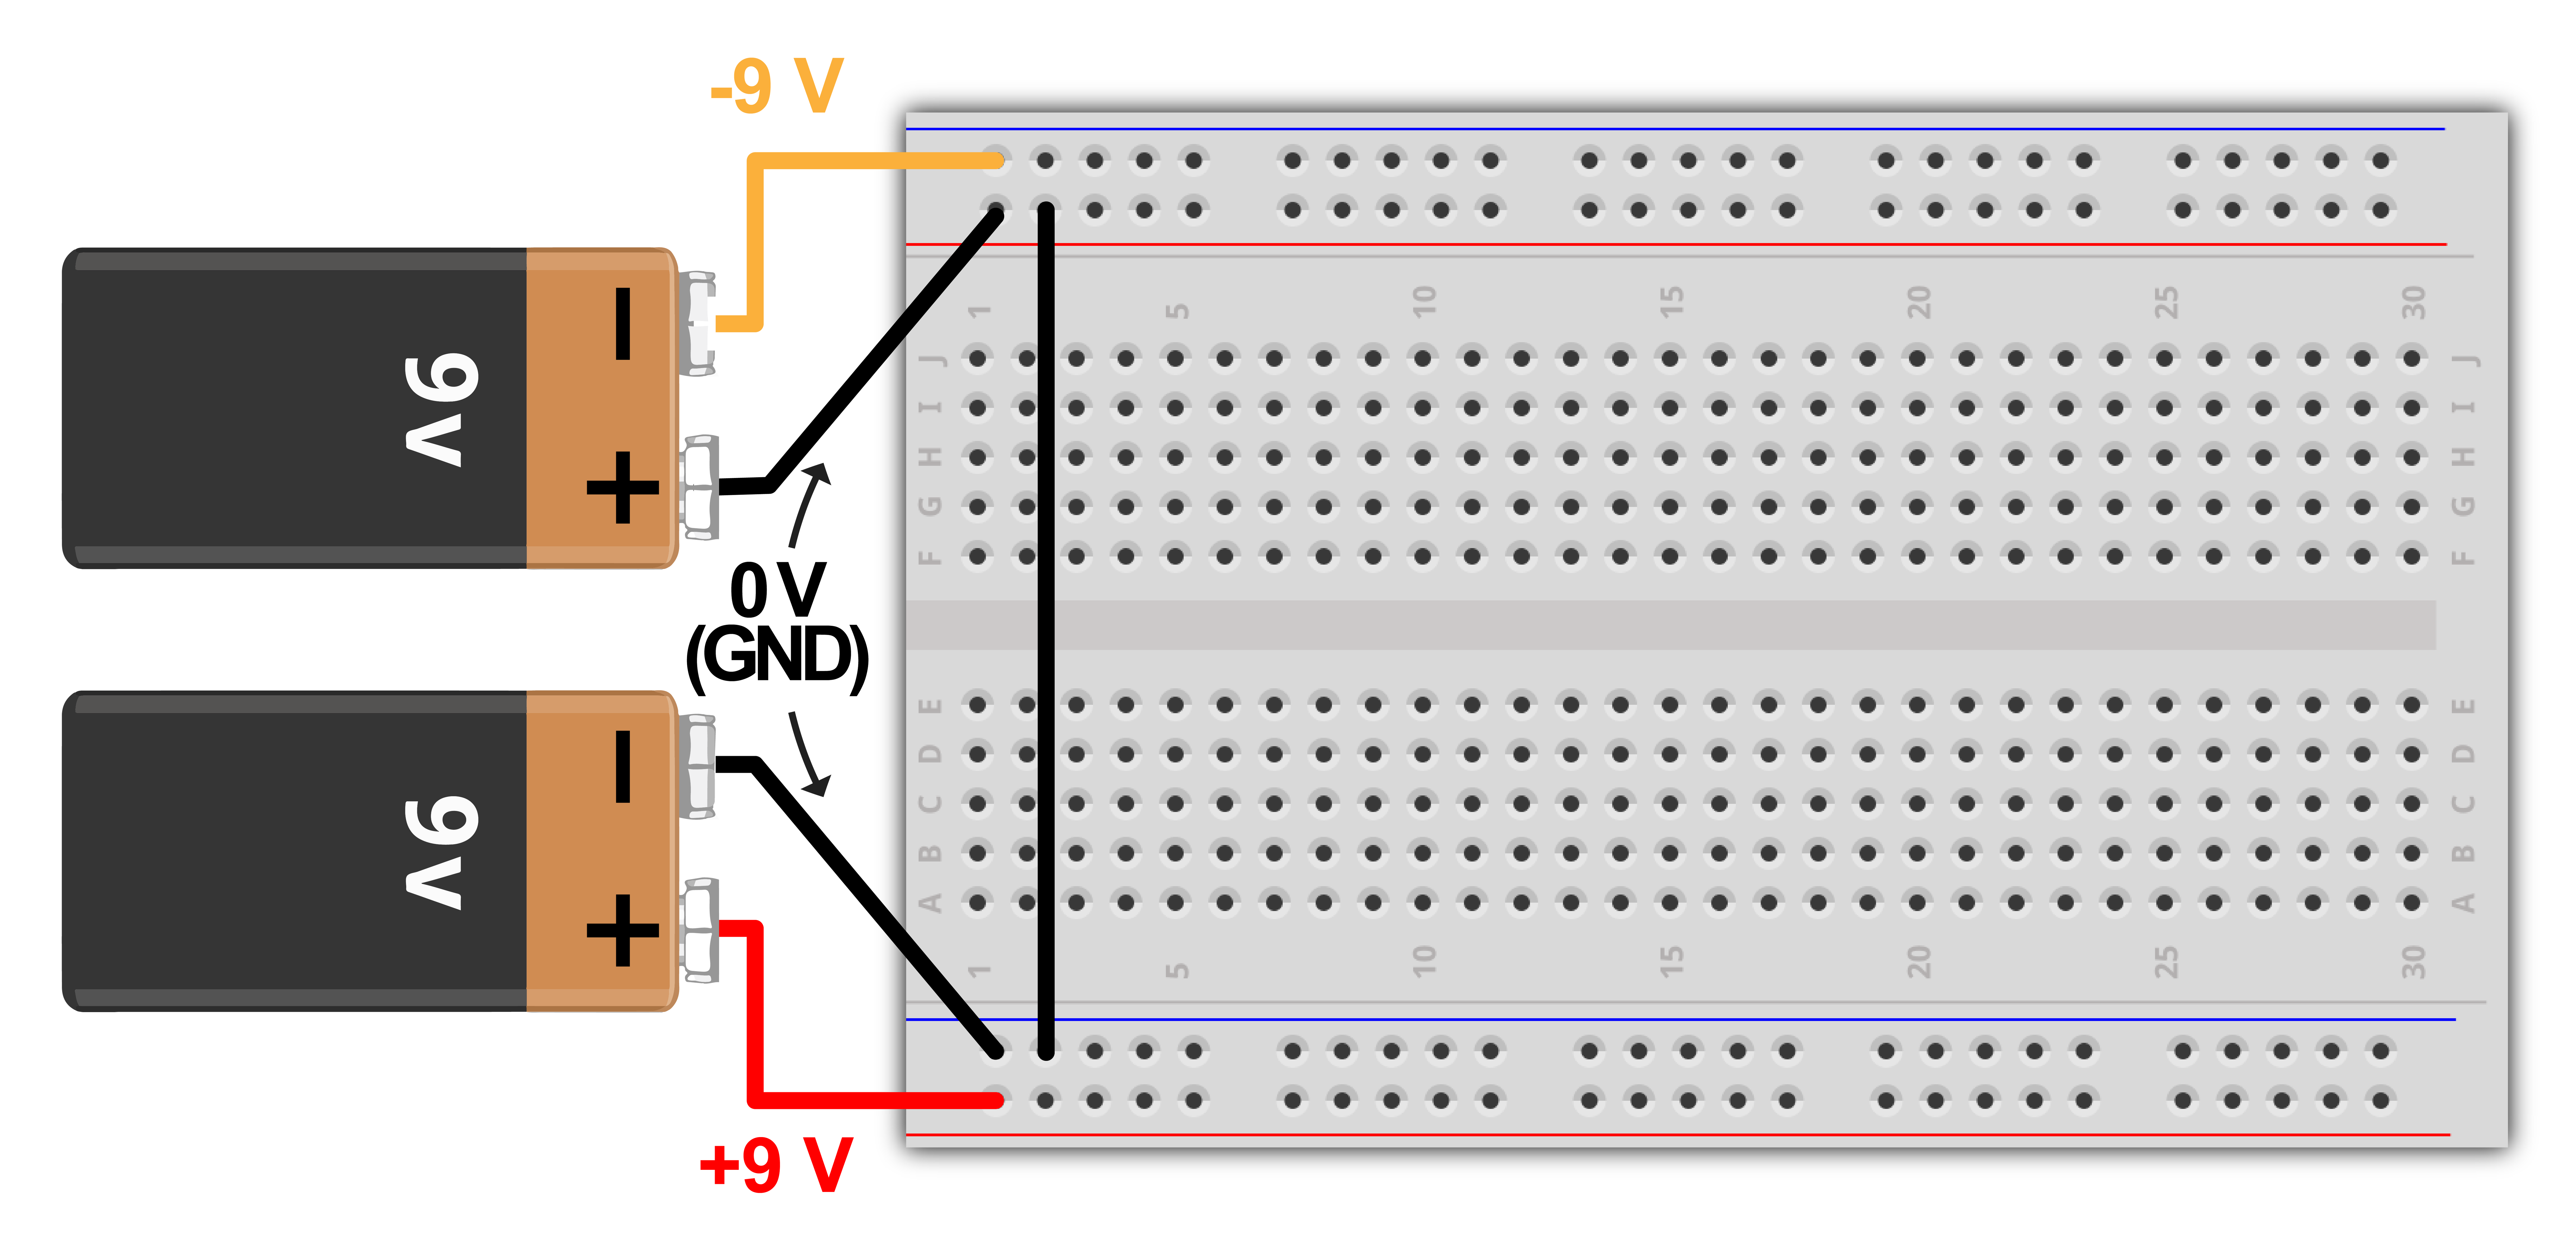 Build An Emg Audio Amplifier Electromyography 8 Steps With Instrumentation Cmrr Calibration Step 4 Power Supply